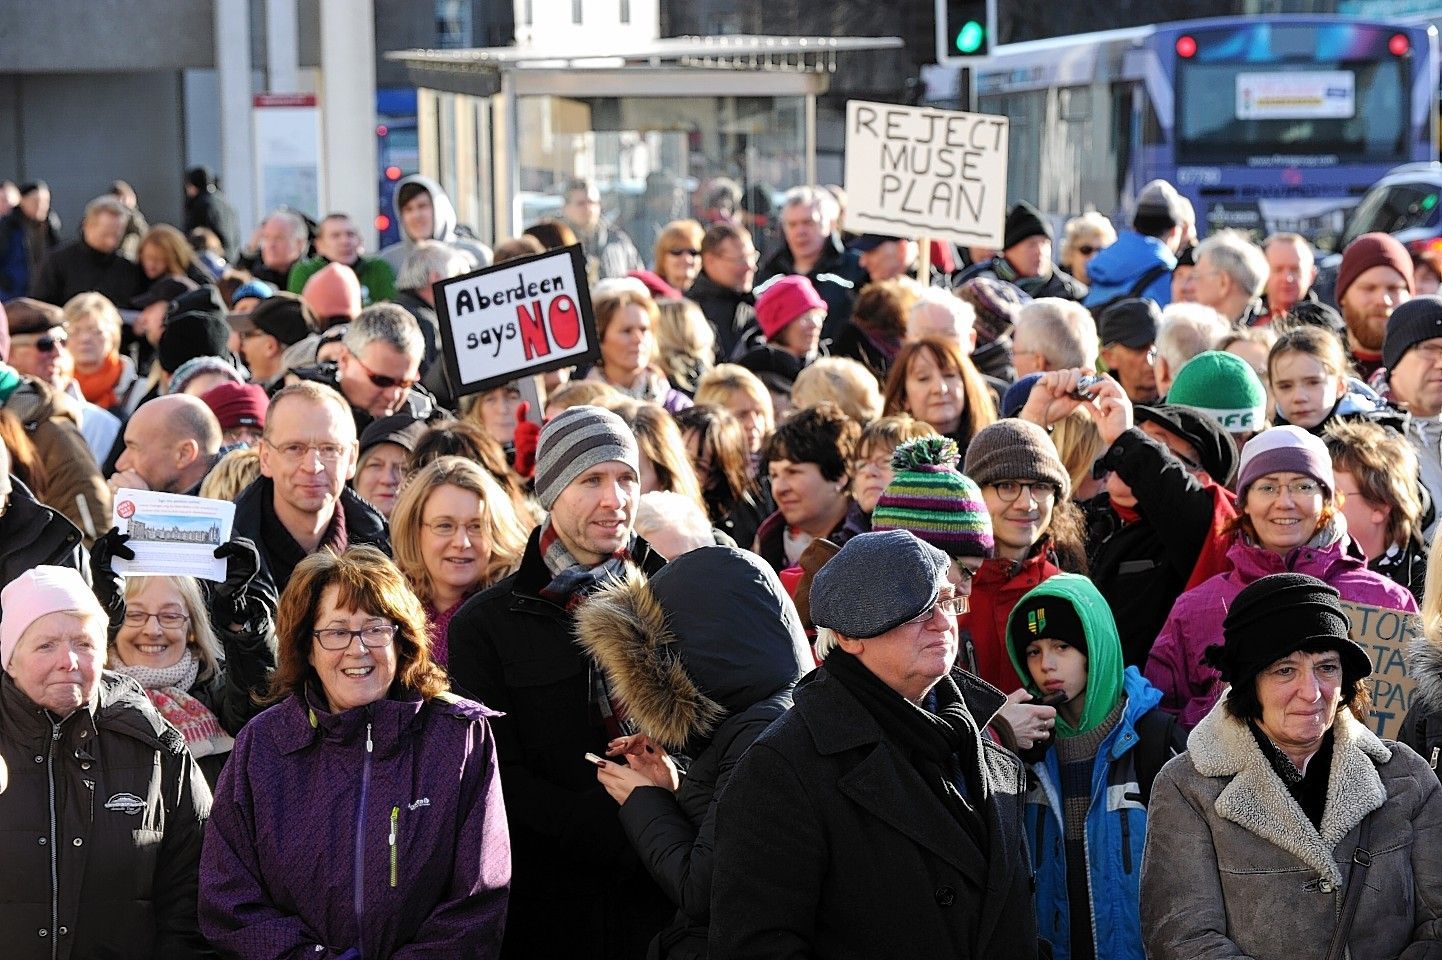 Hundreds of people are expected to turn out to voice their concerns again tomorrow